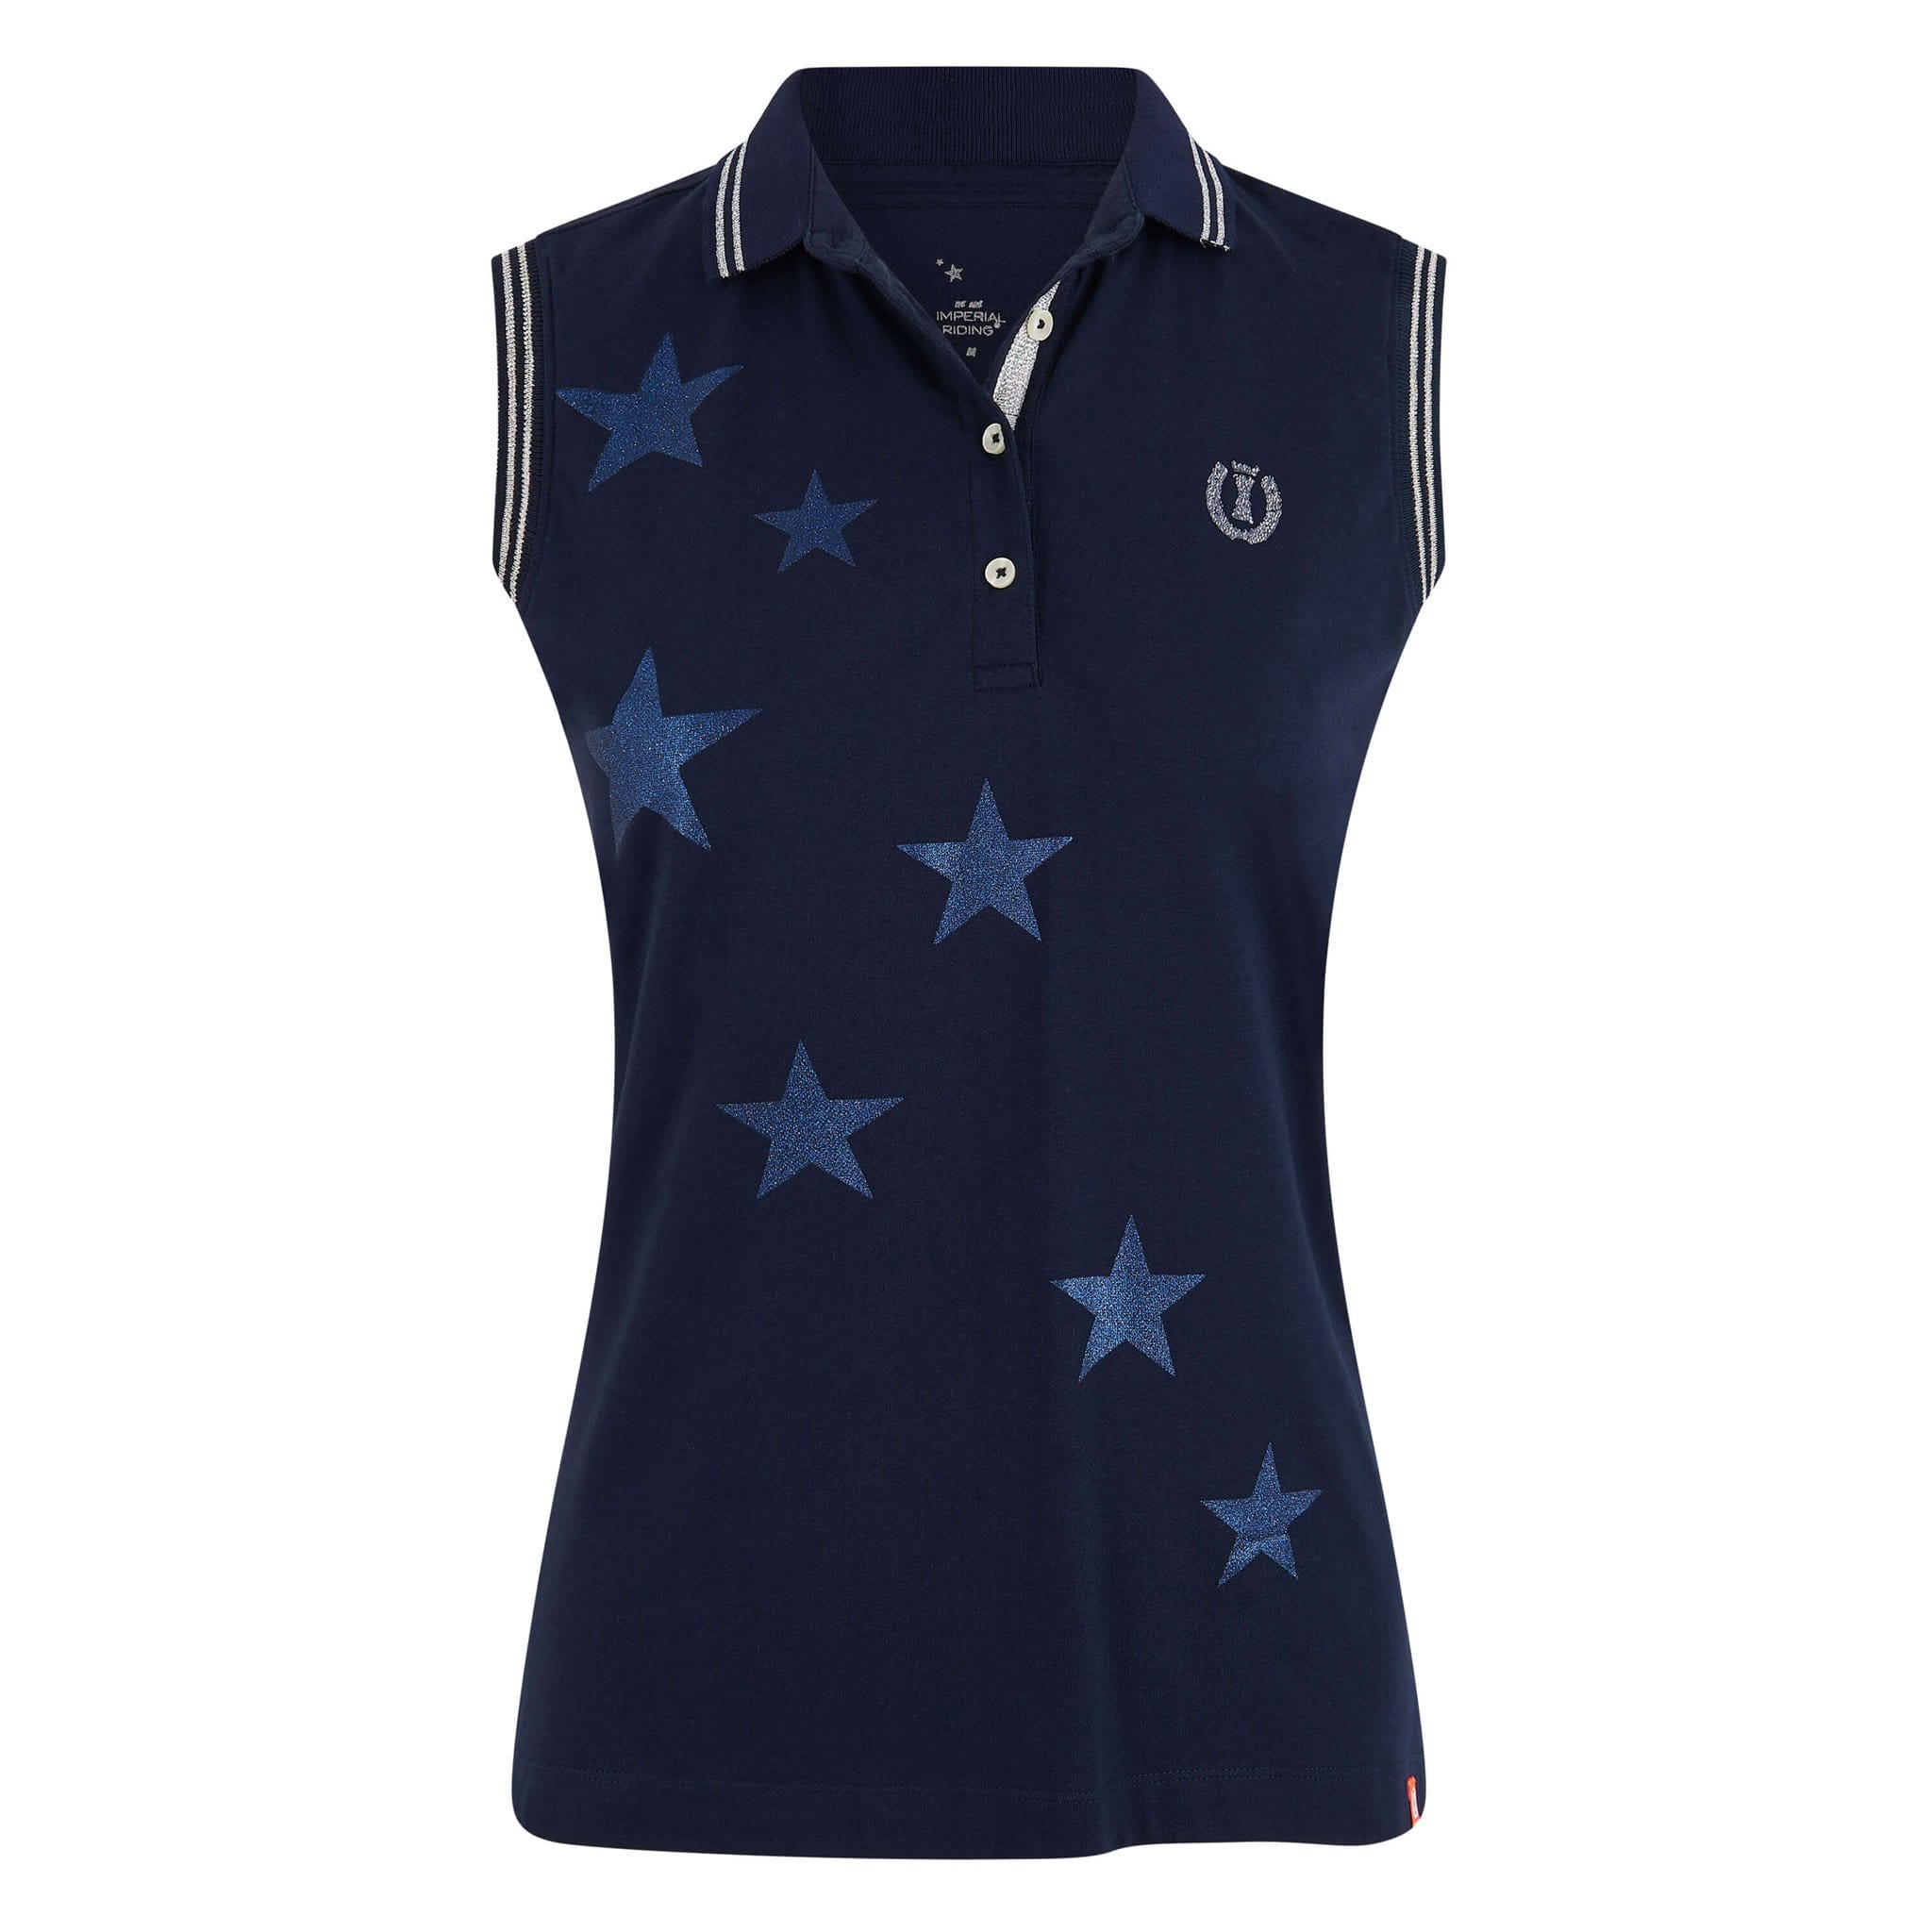 Imperial Riding Stardust Sleeveless Polo Shirt KL35120023 Navy Front